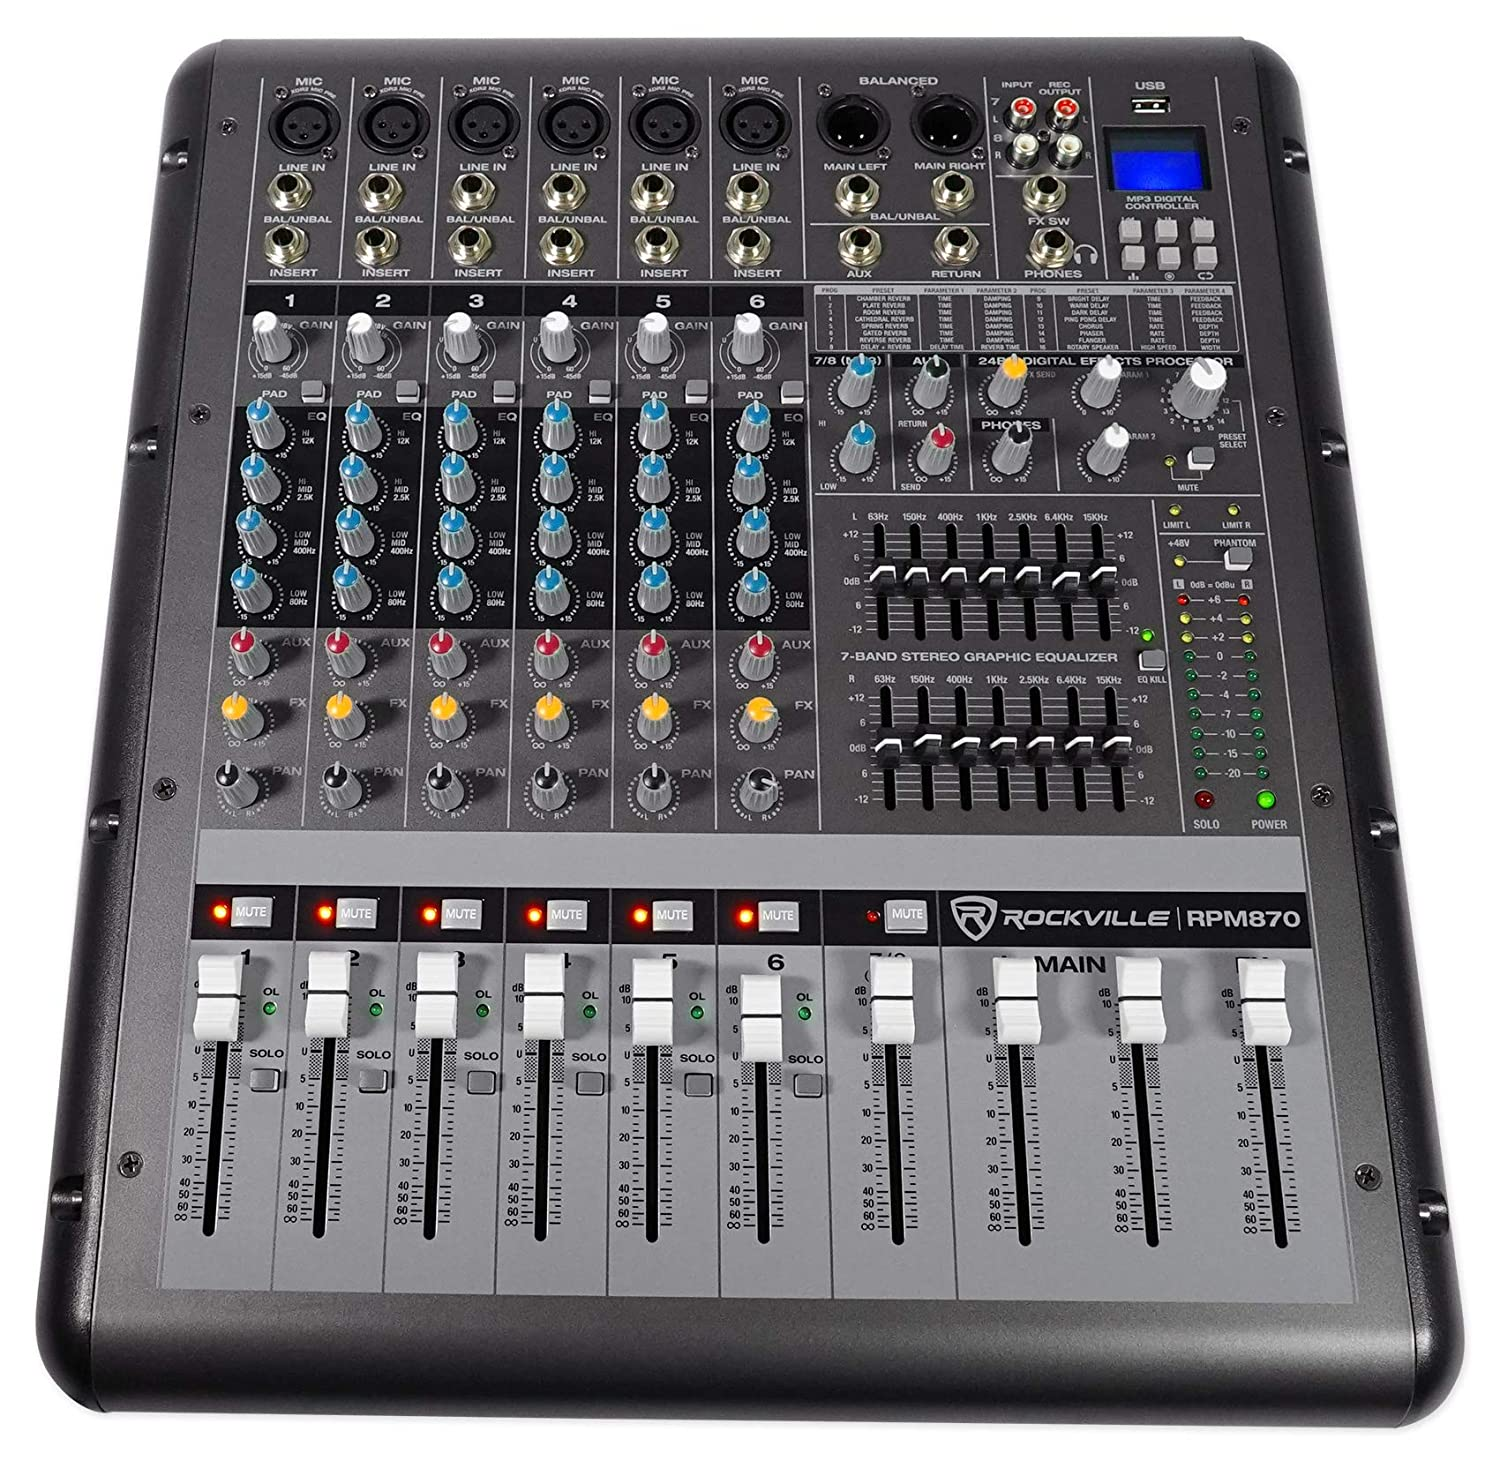 Rockville RPM870 8-Channel 6000w Powered Mixer, USB, Effects For Church/School RPM870 HOW